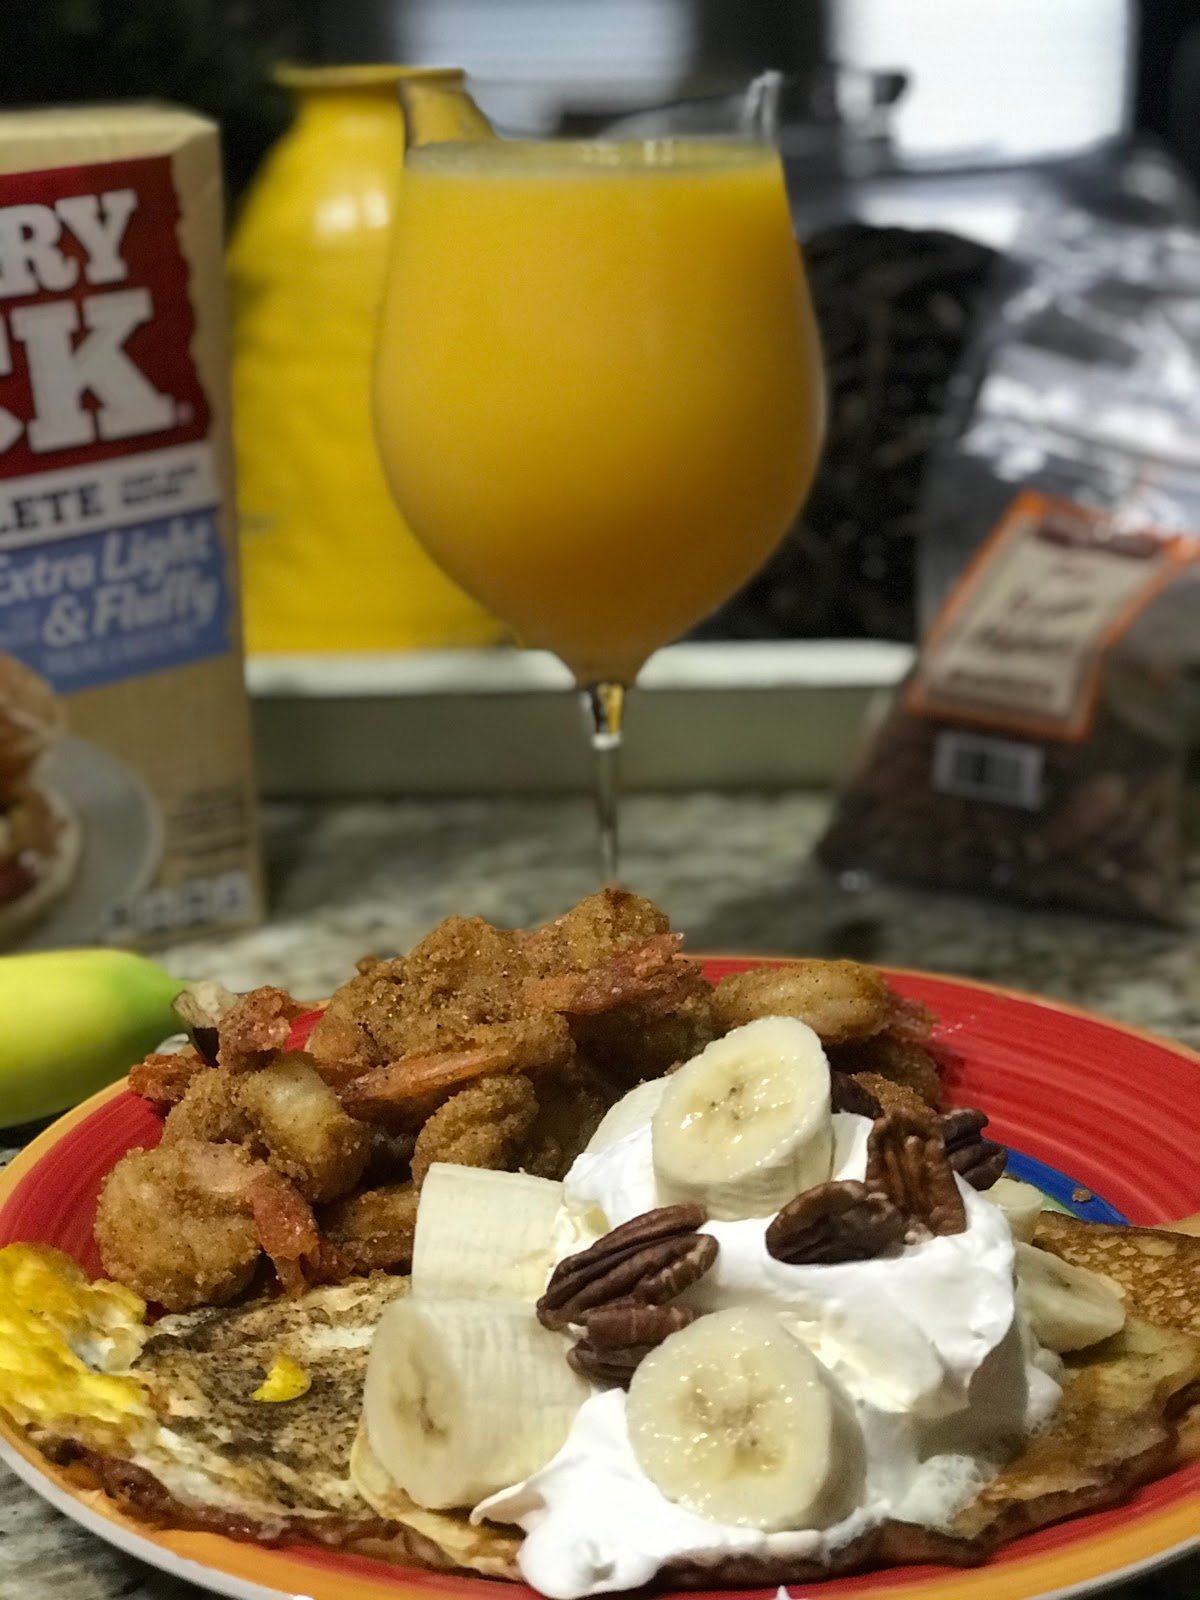 Our Pancakes And Shrimp Tradition! Orange juice, pancakes, eggs and shrimp: Bits Of food